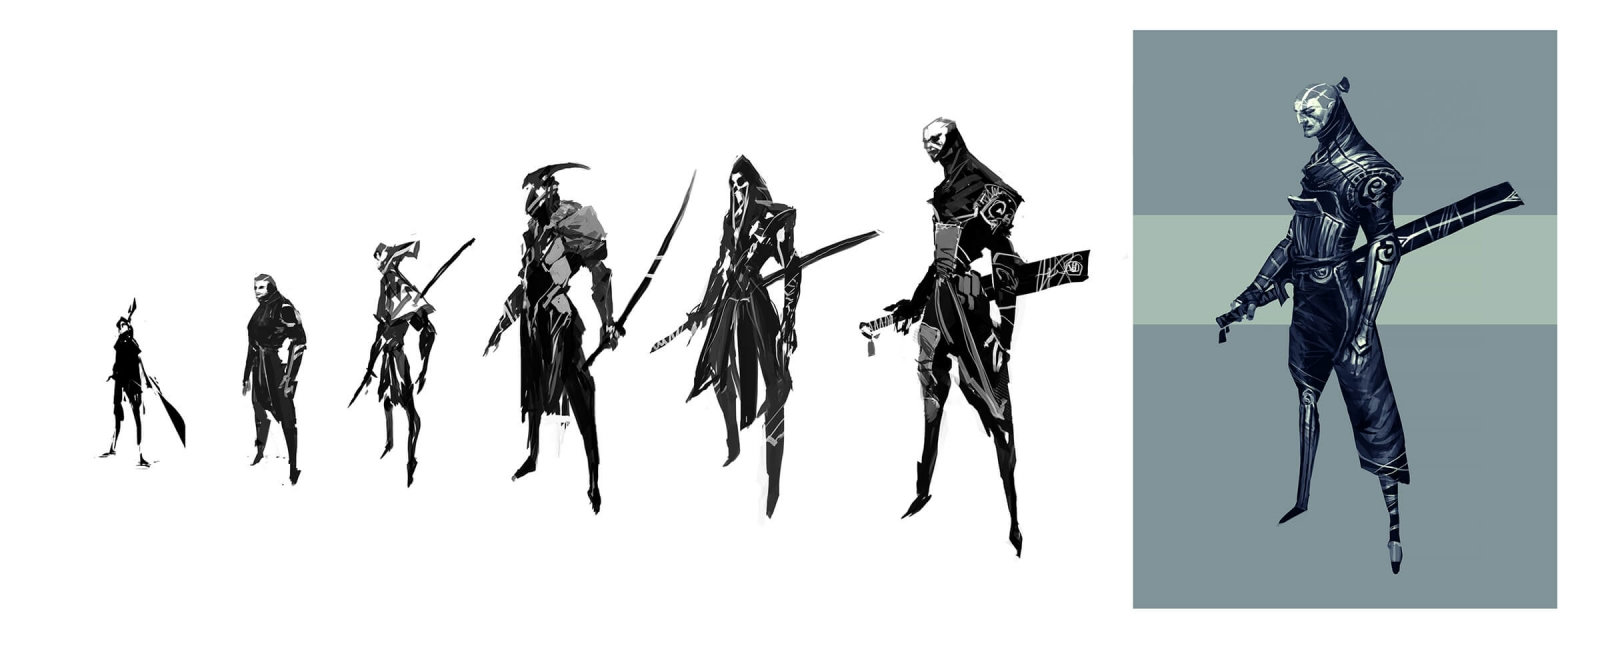 Black-and-white development art of warriors standing in ornate battlegear looking from the side.